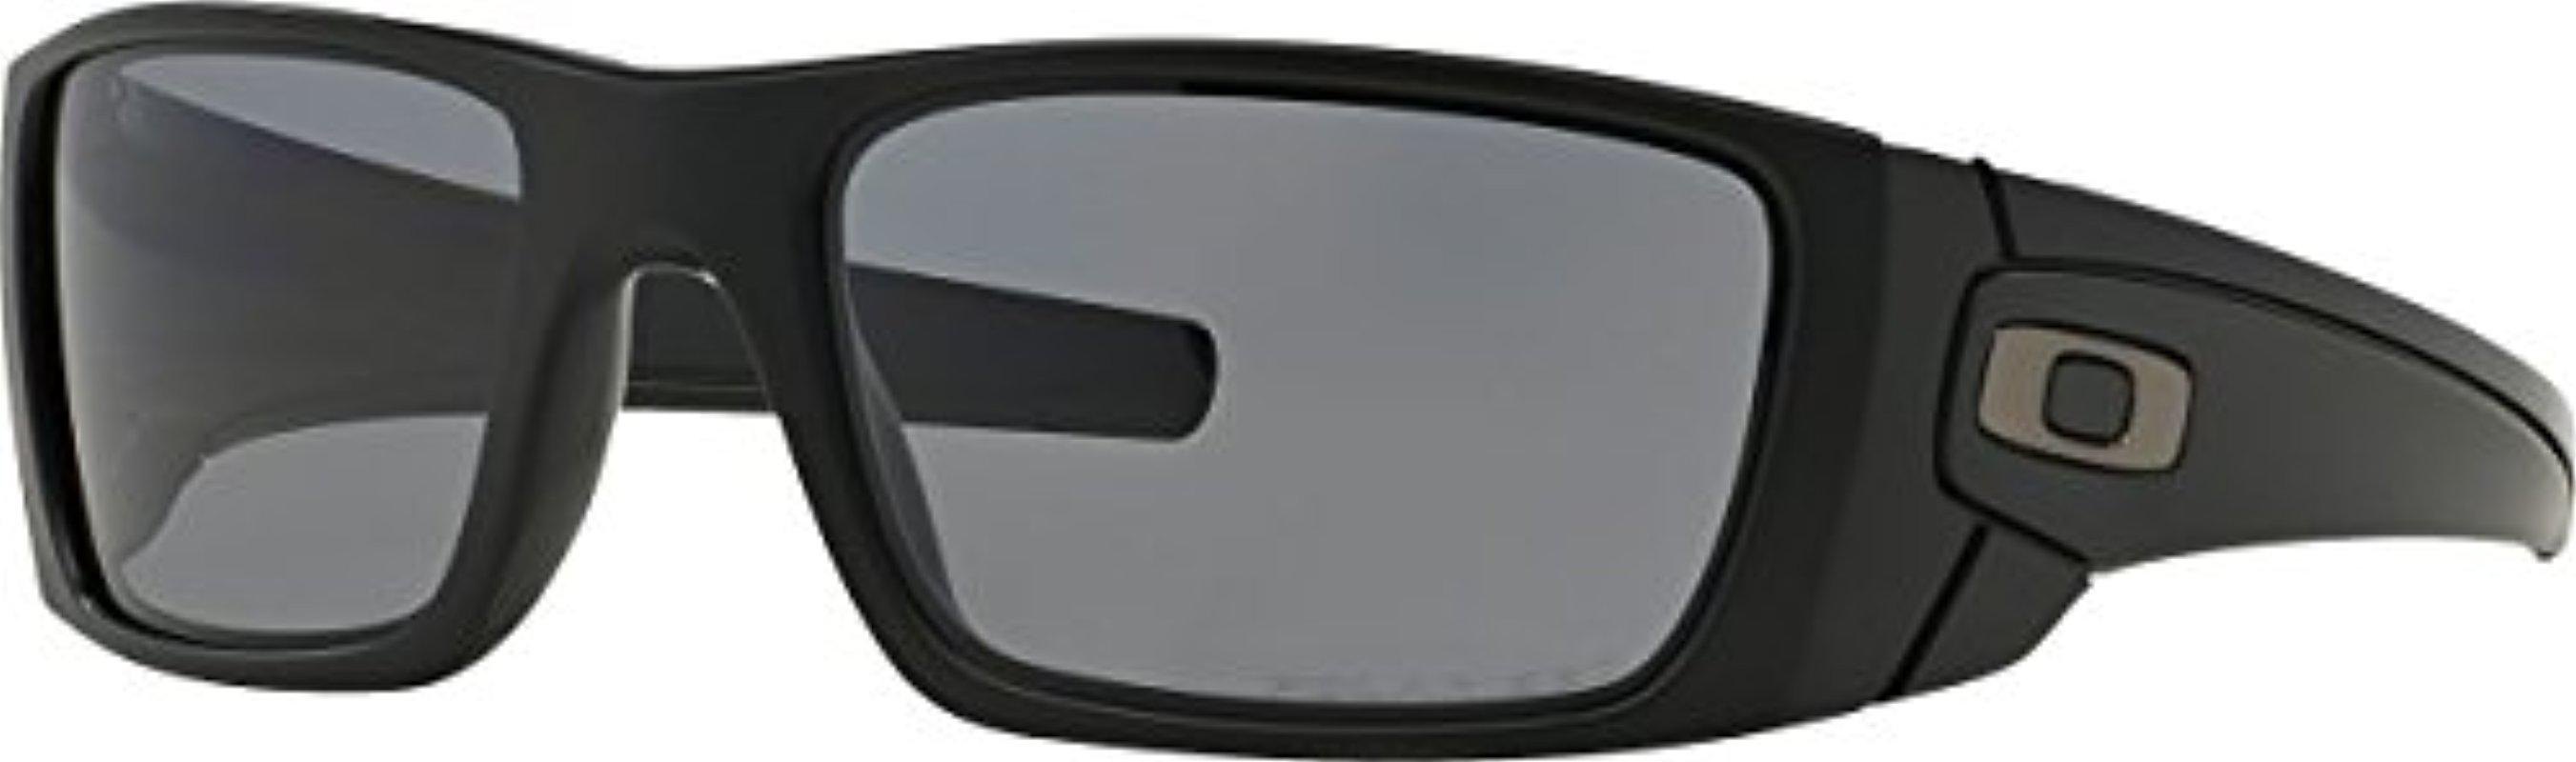 f98113c2a81 Lyst - Oakley Fuelcell Sunglasses in Black